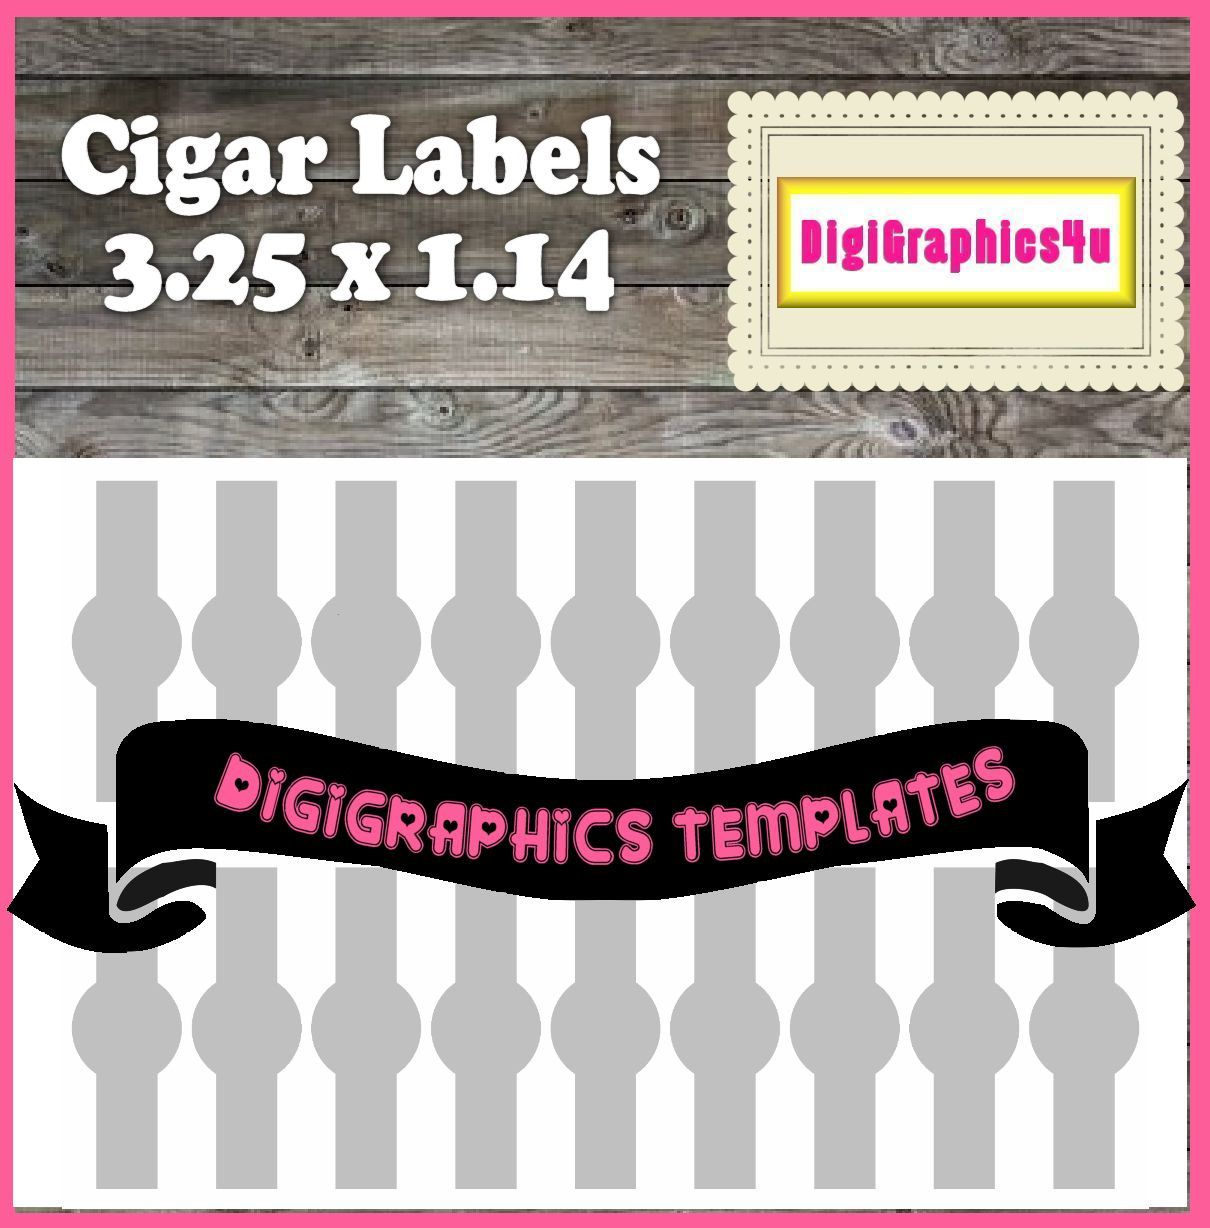 Cigar Labels Template Instant Download PNG Format Digital Collage ...